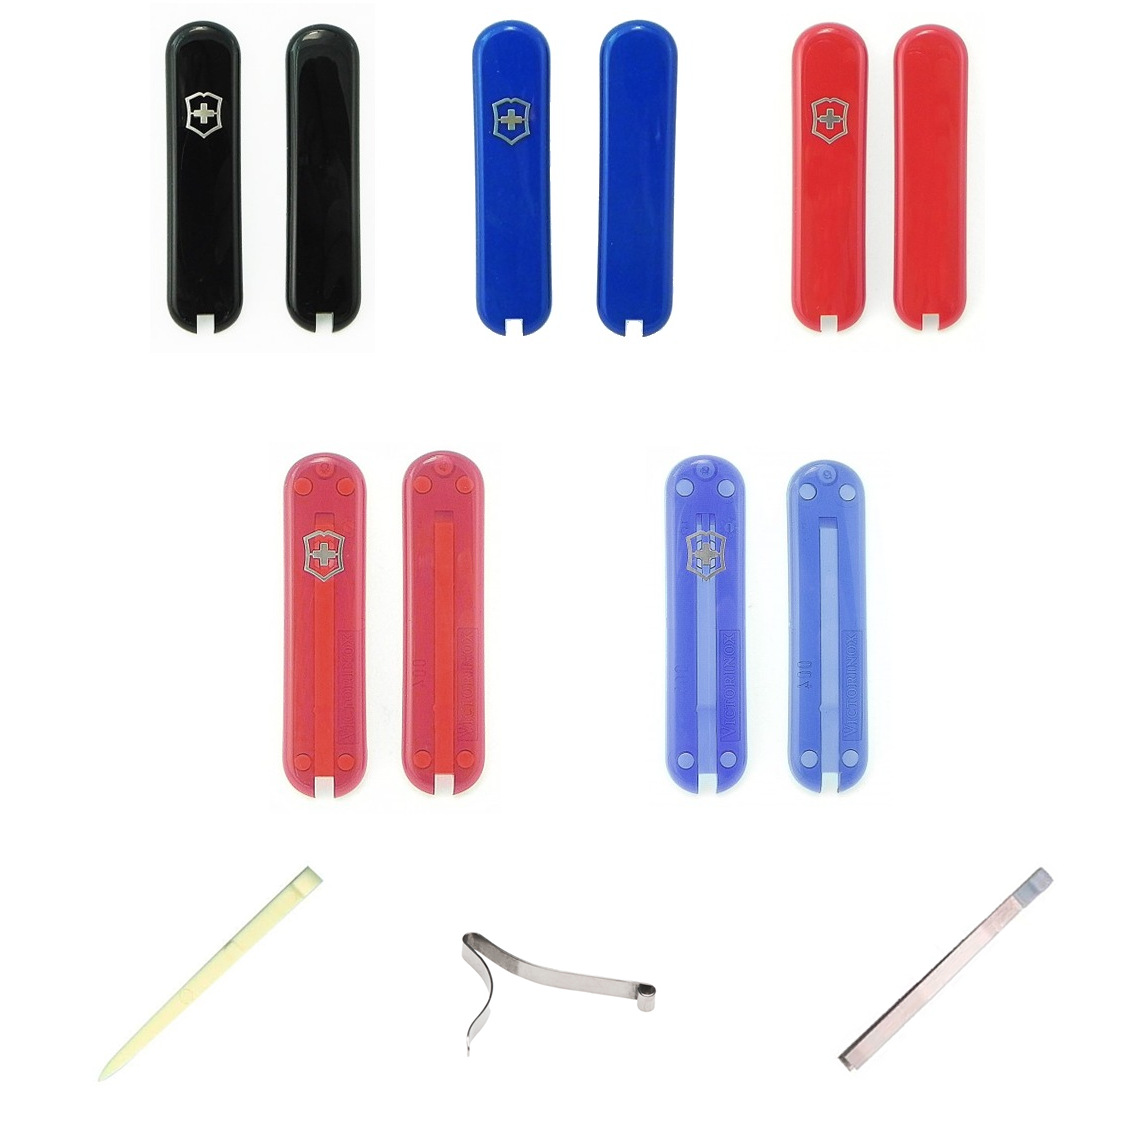 Victorinox 58mm Swiss Army Knife Spares Tweezers Toothpick